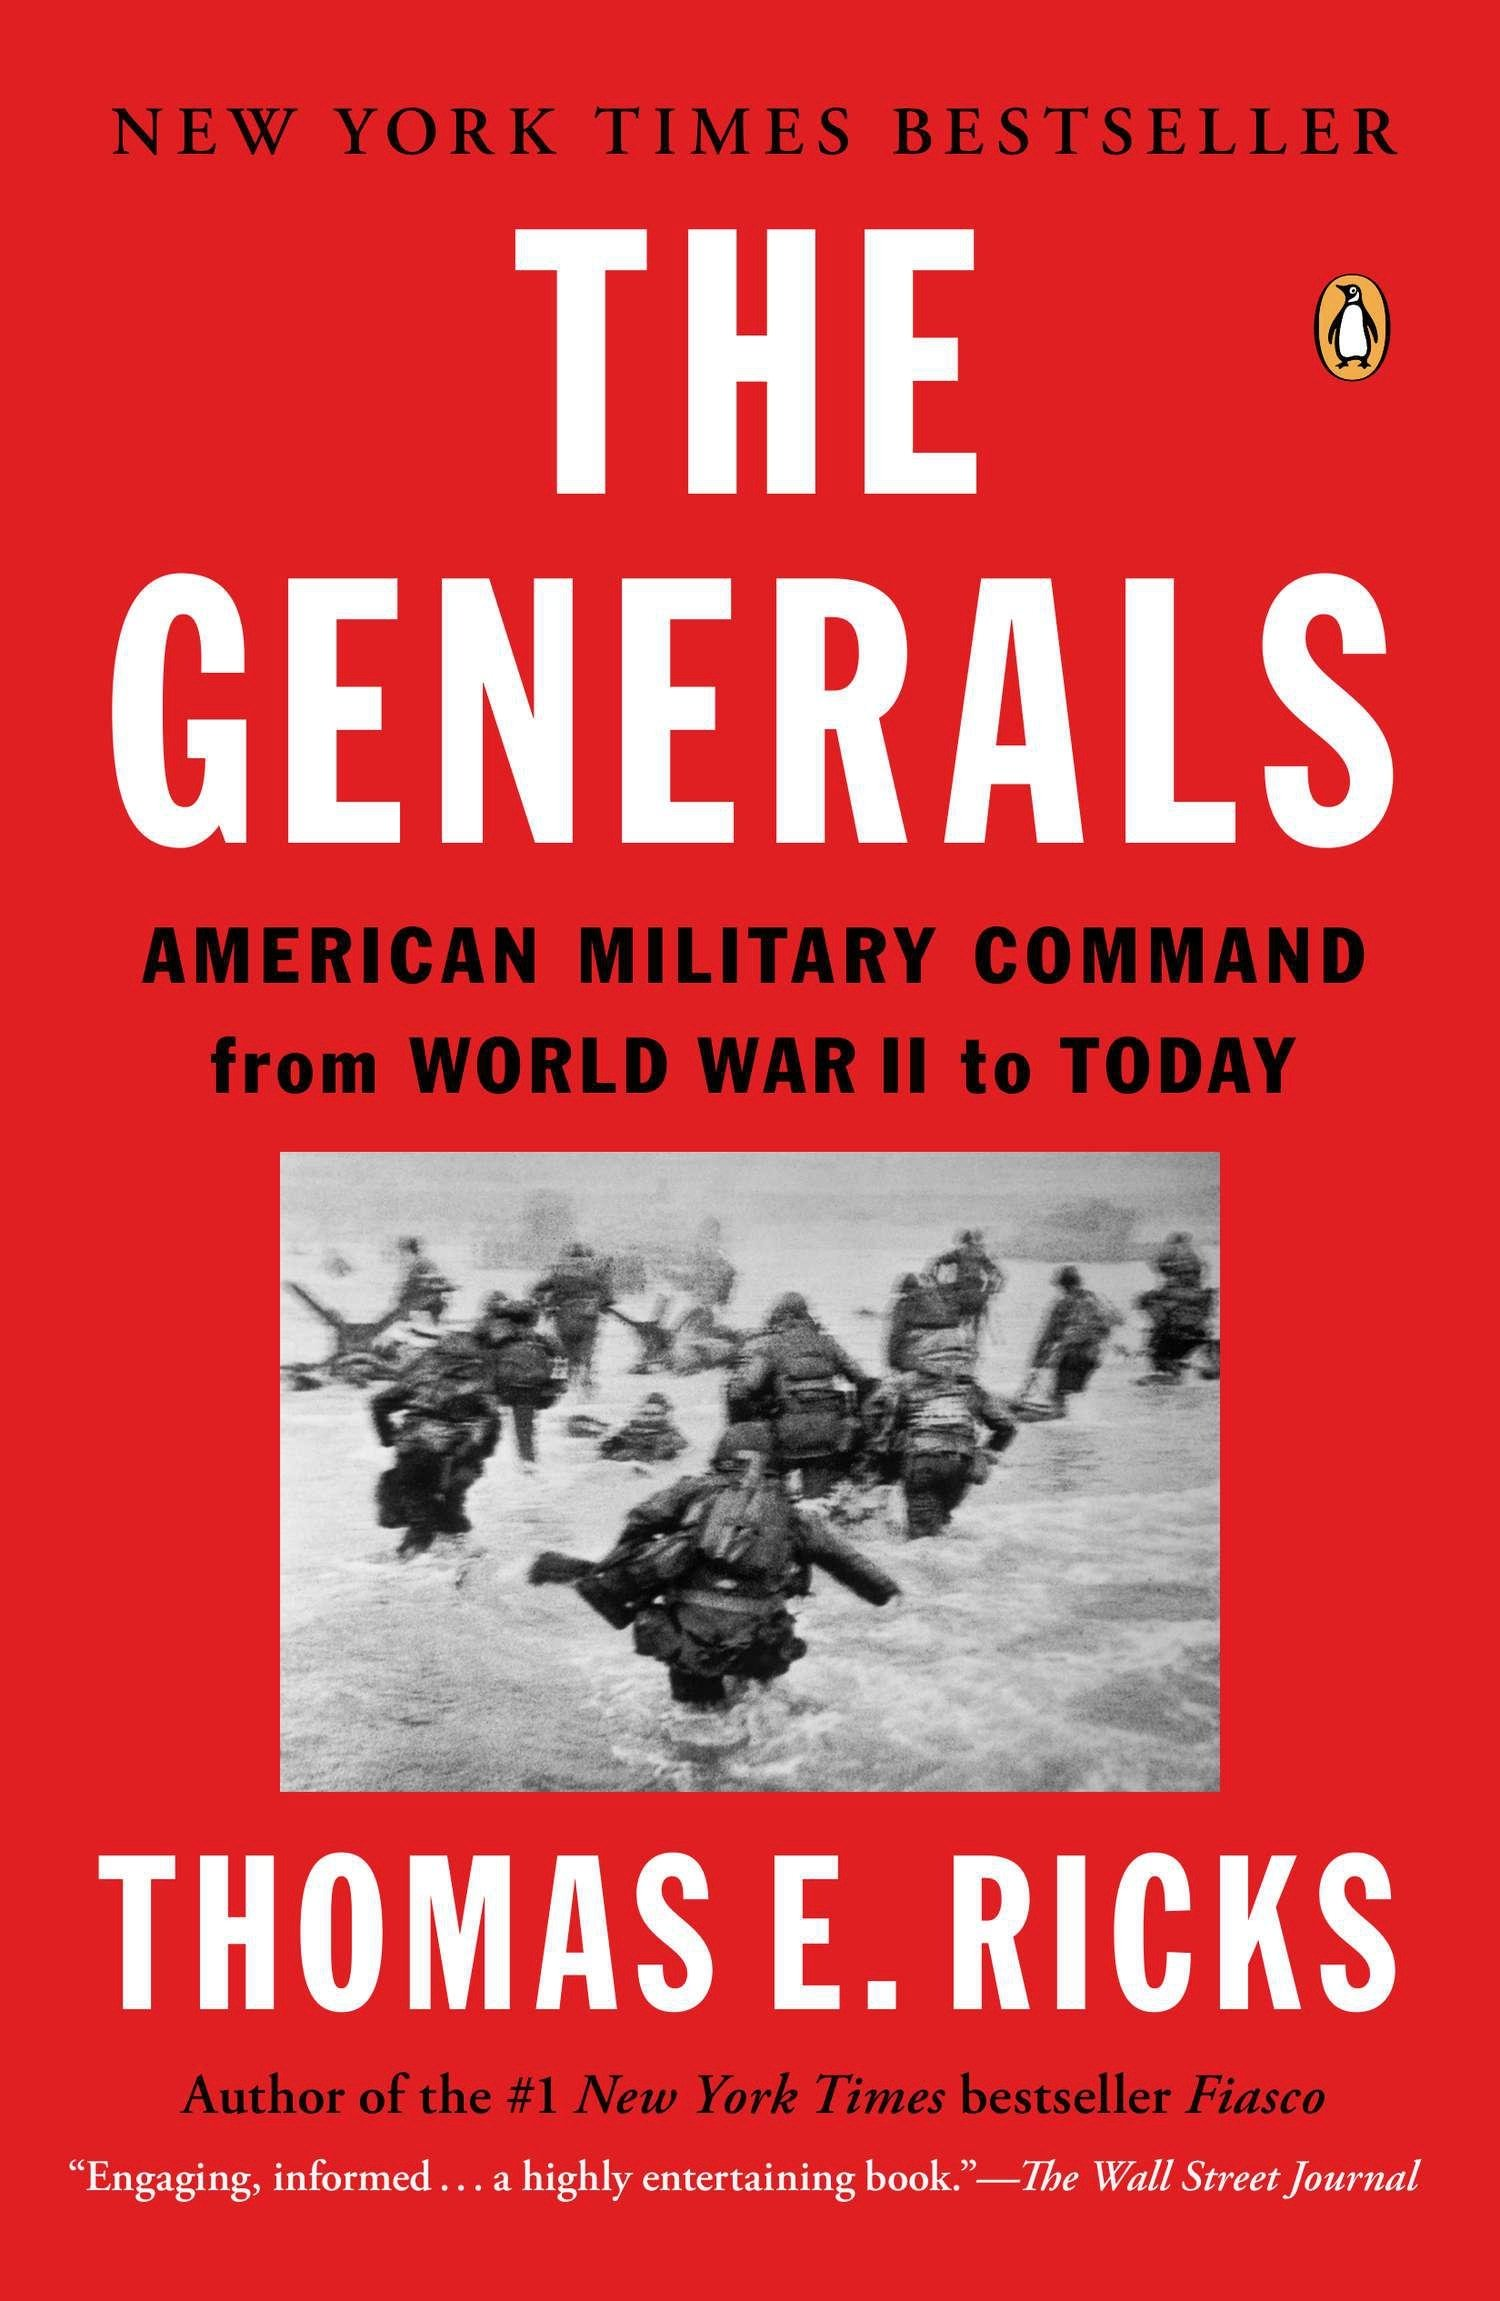 Image result for the generals thomas ricks amazon